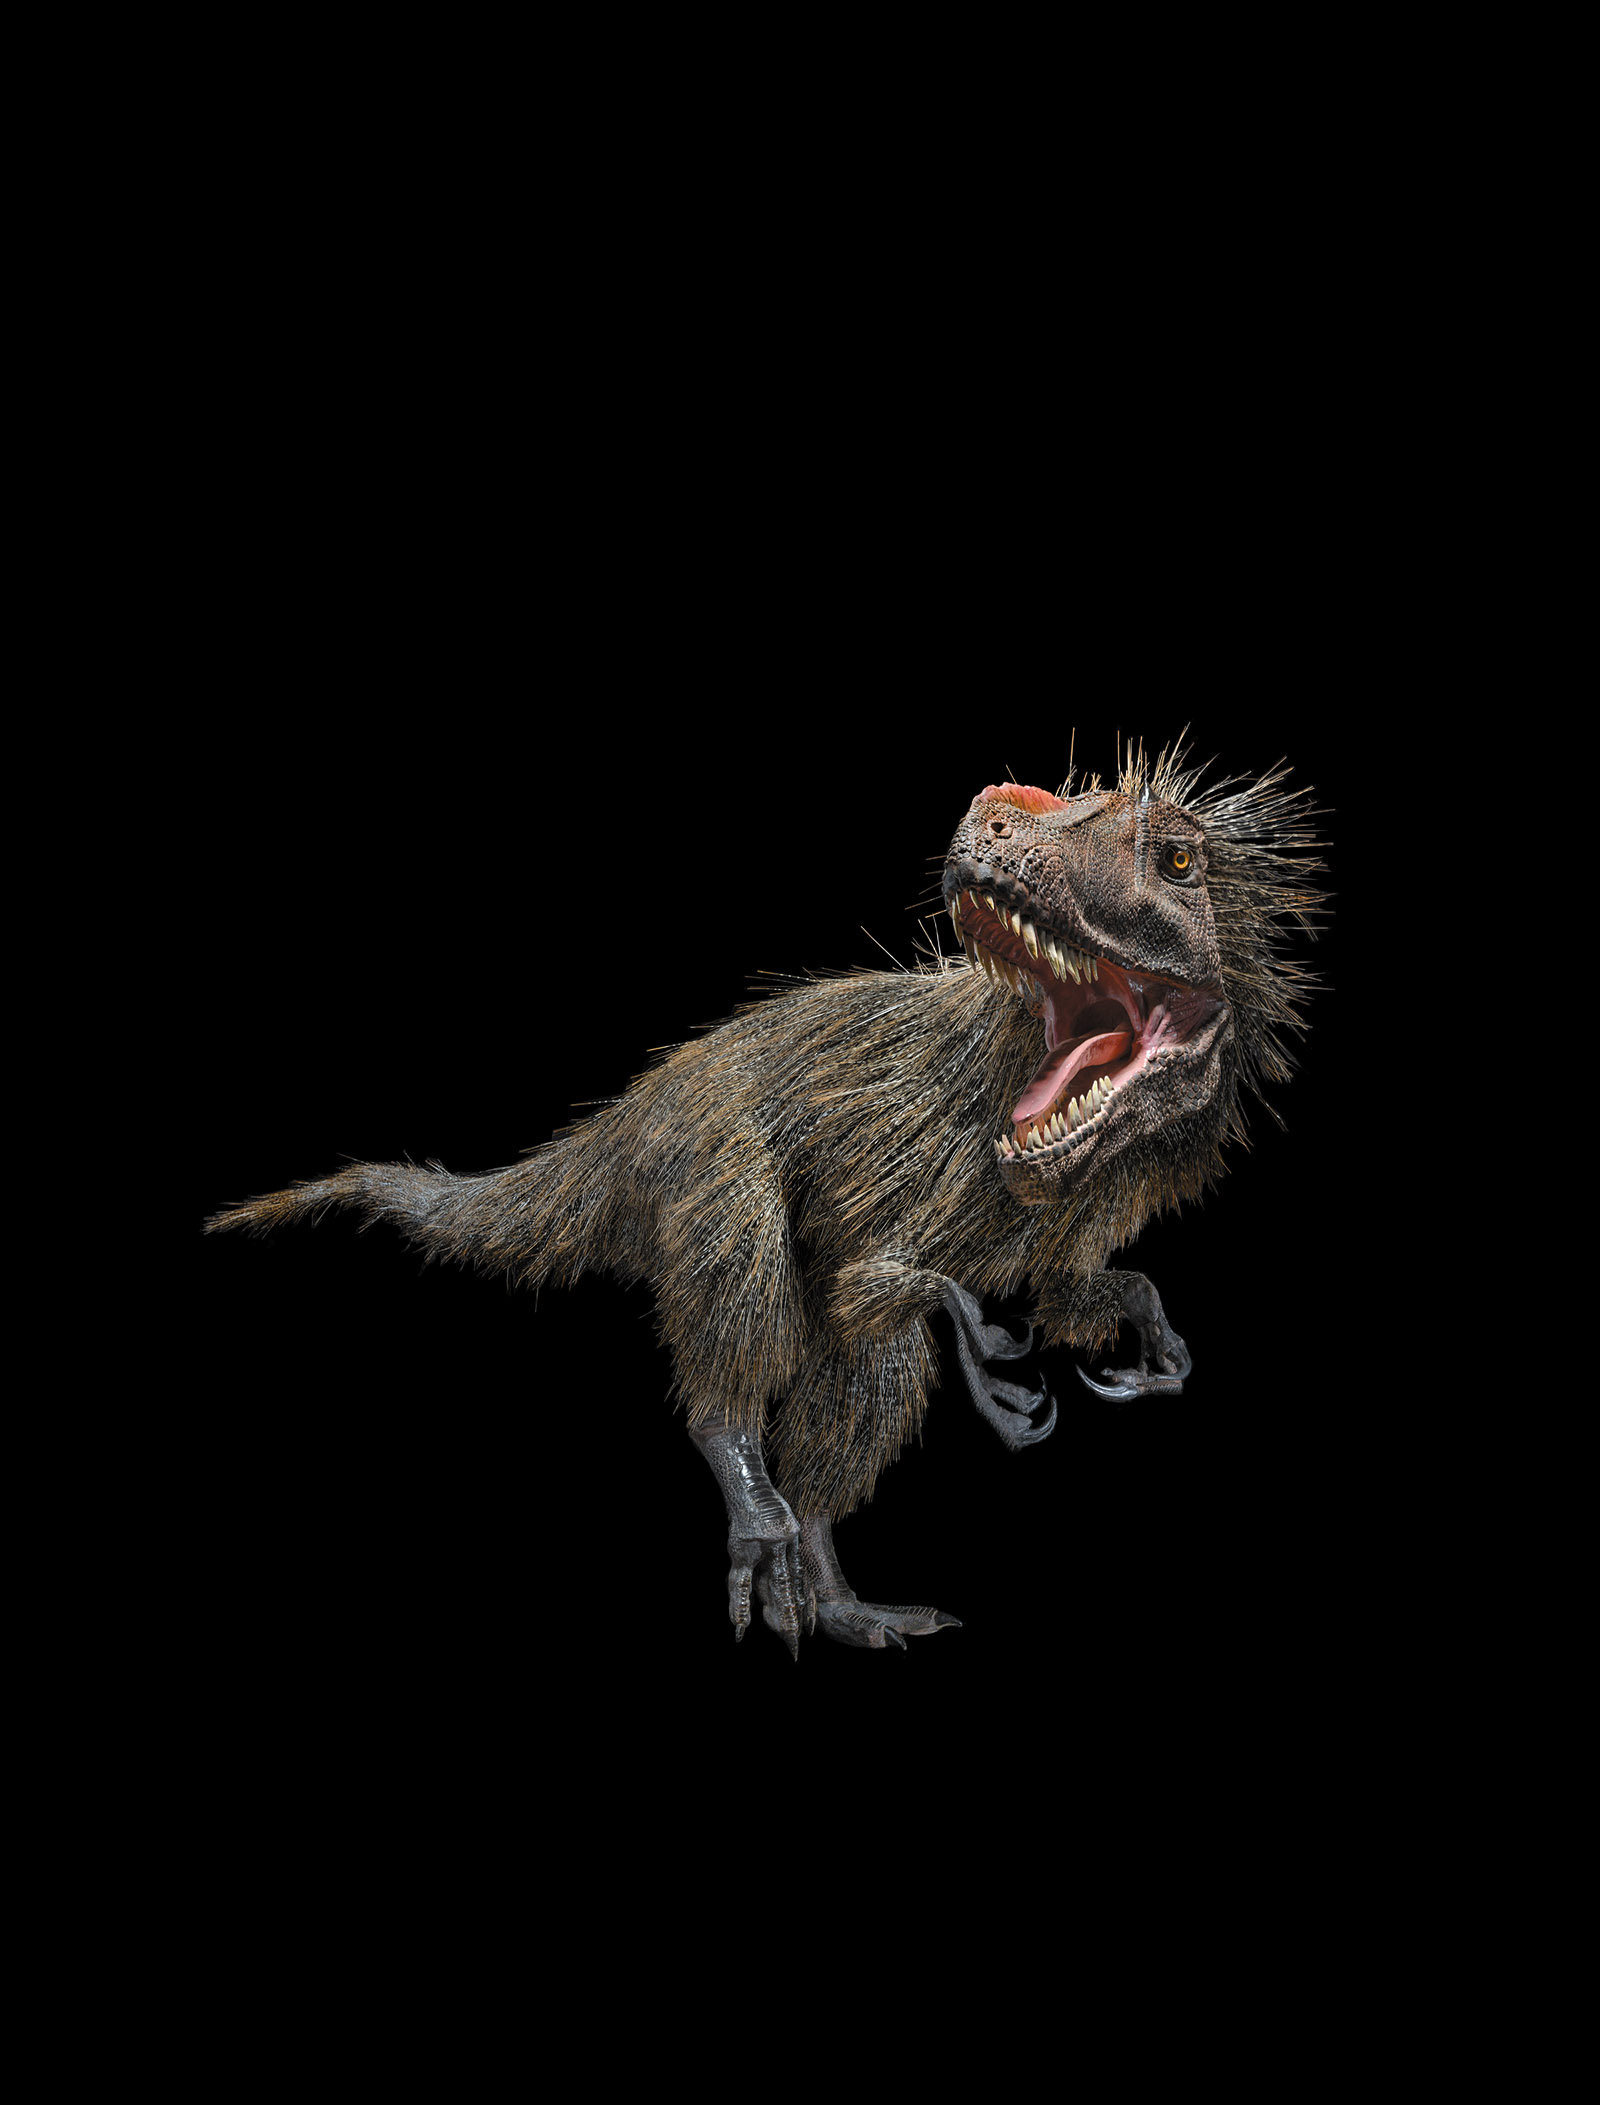 A life-size model of the early Cretaceous tyrannosaur